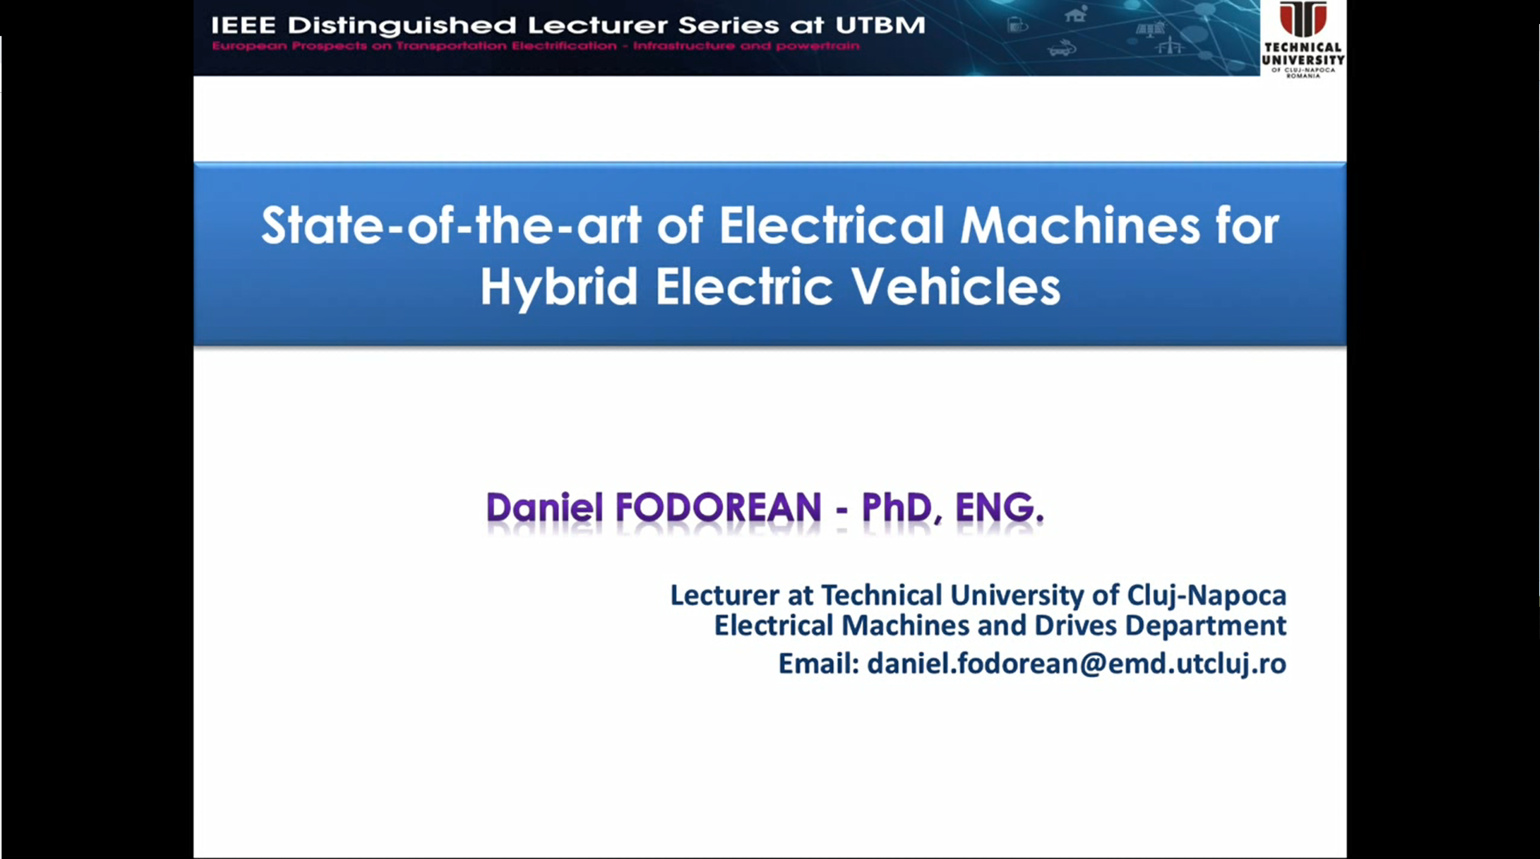 State-of-the-art Electrical Machines for Hybrid Electric Vehicles